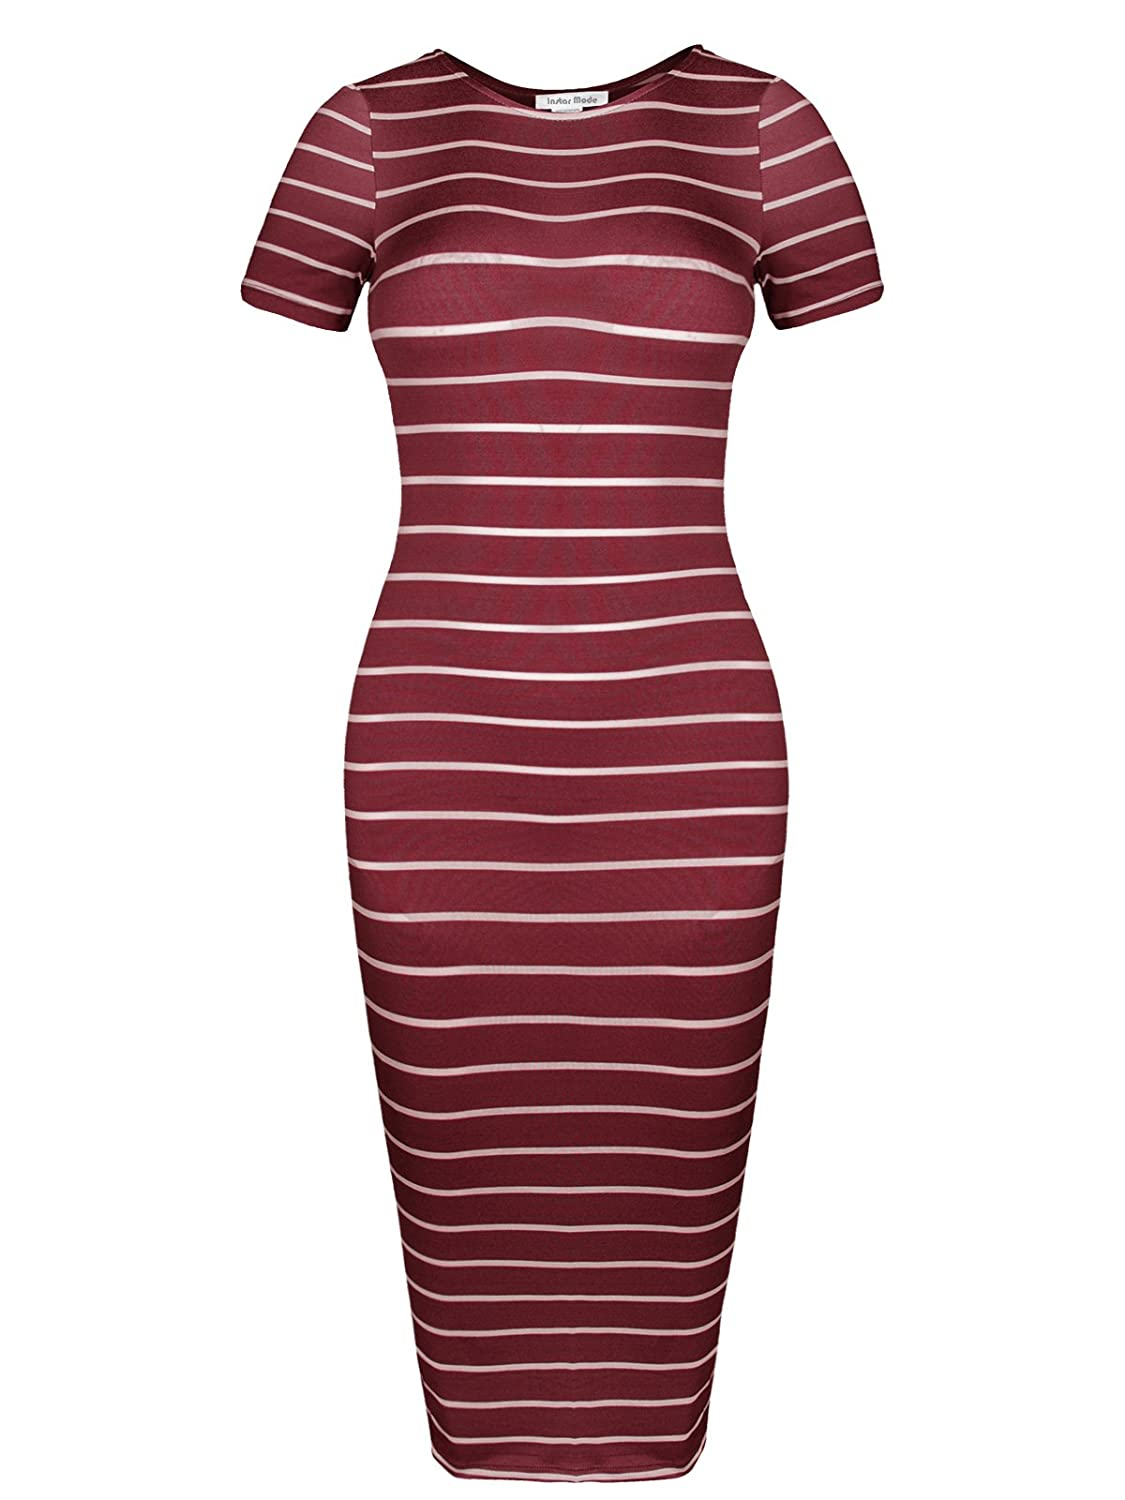 Idrw004 Burgundy White Instar Mode Women's Classic Casual Jersey Striped 3 4 Sleeve Bodycon Dress